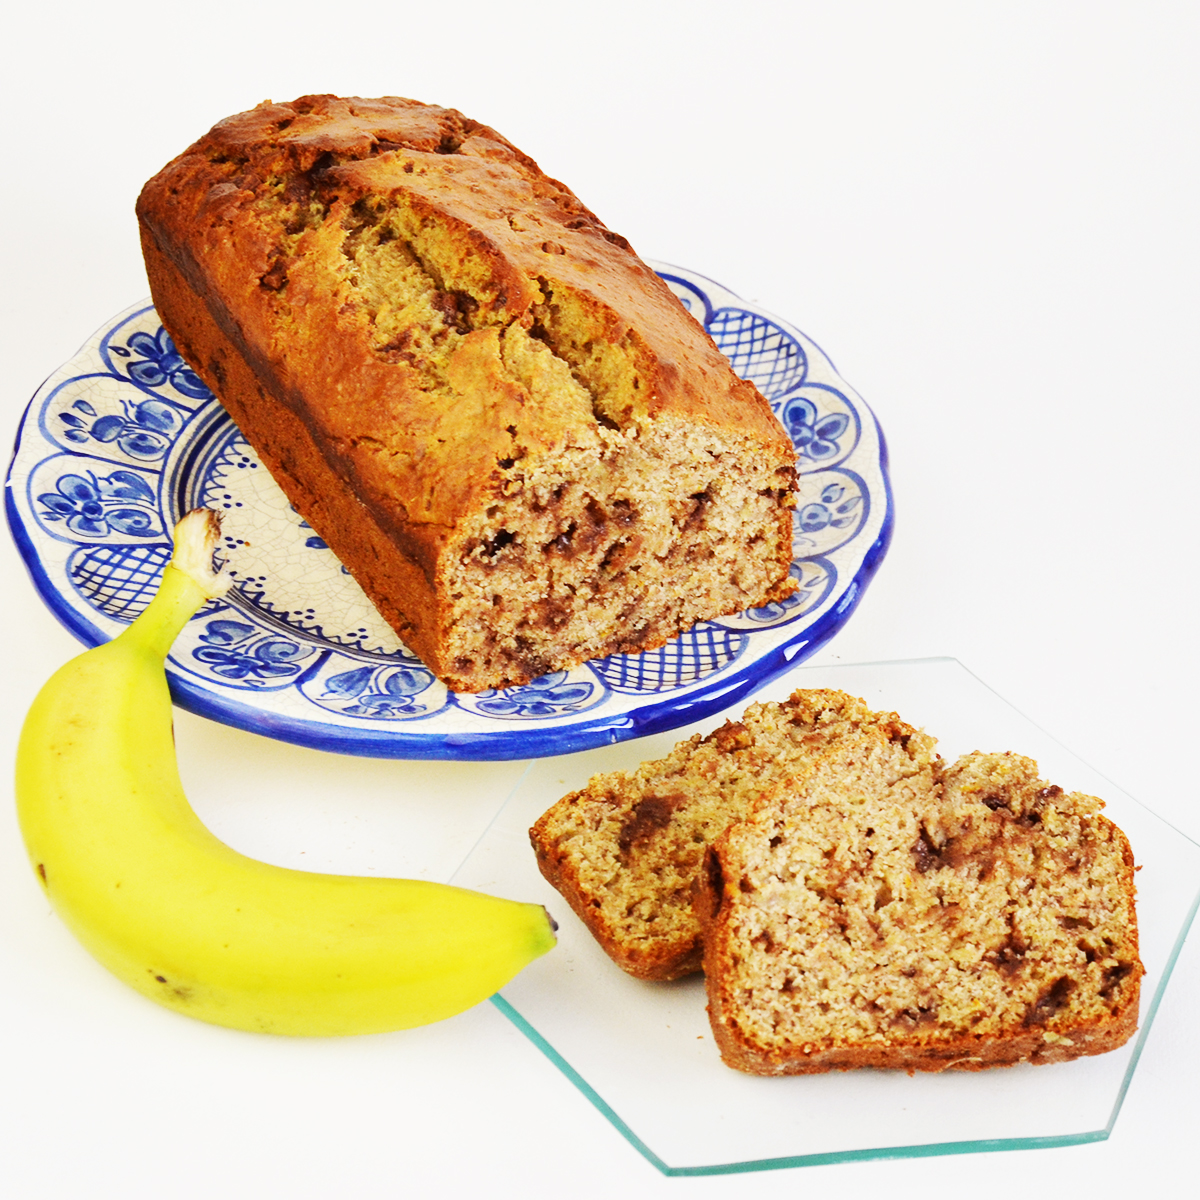 Is your home full of extra chocolate eggs and bunnies? Making this chocolate banana bread recipe is a perfect way to use up leftover Easter chocolate! Check it out on www.cucicucicoo.com